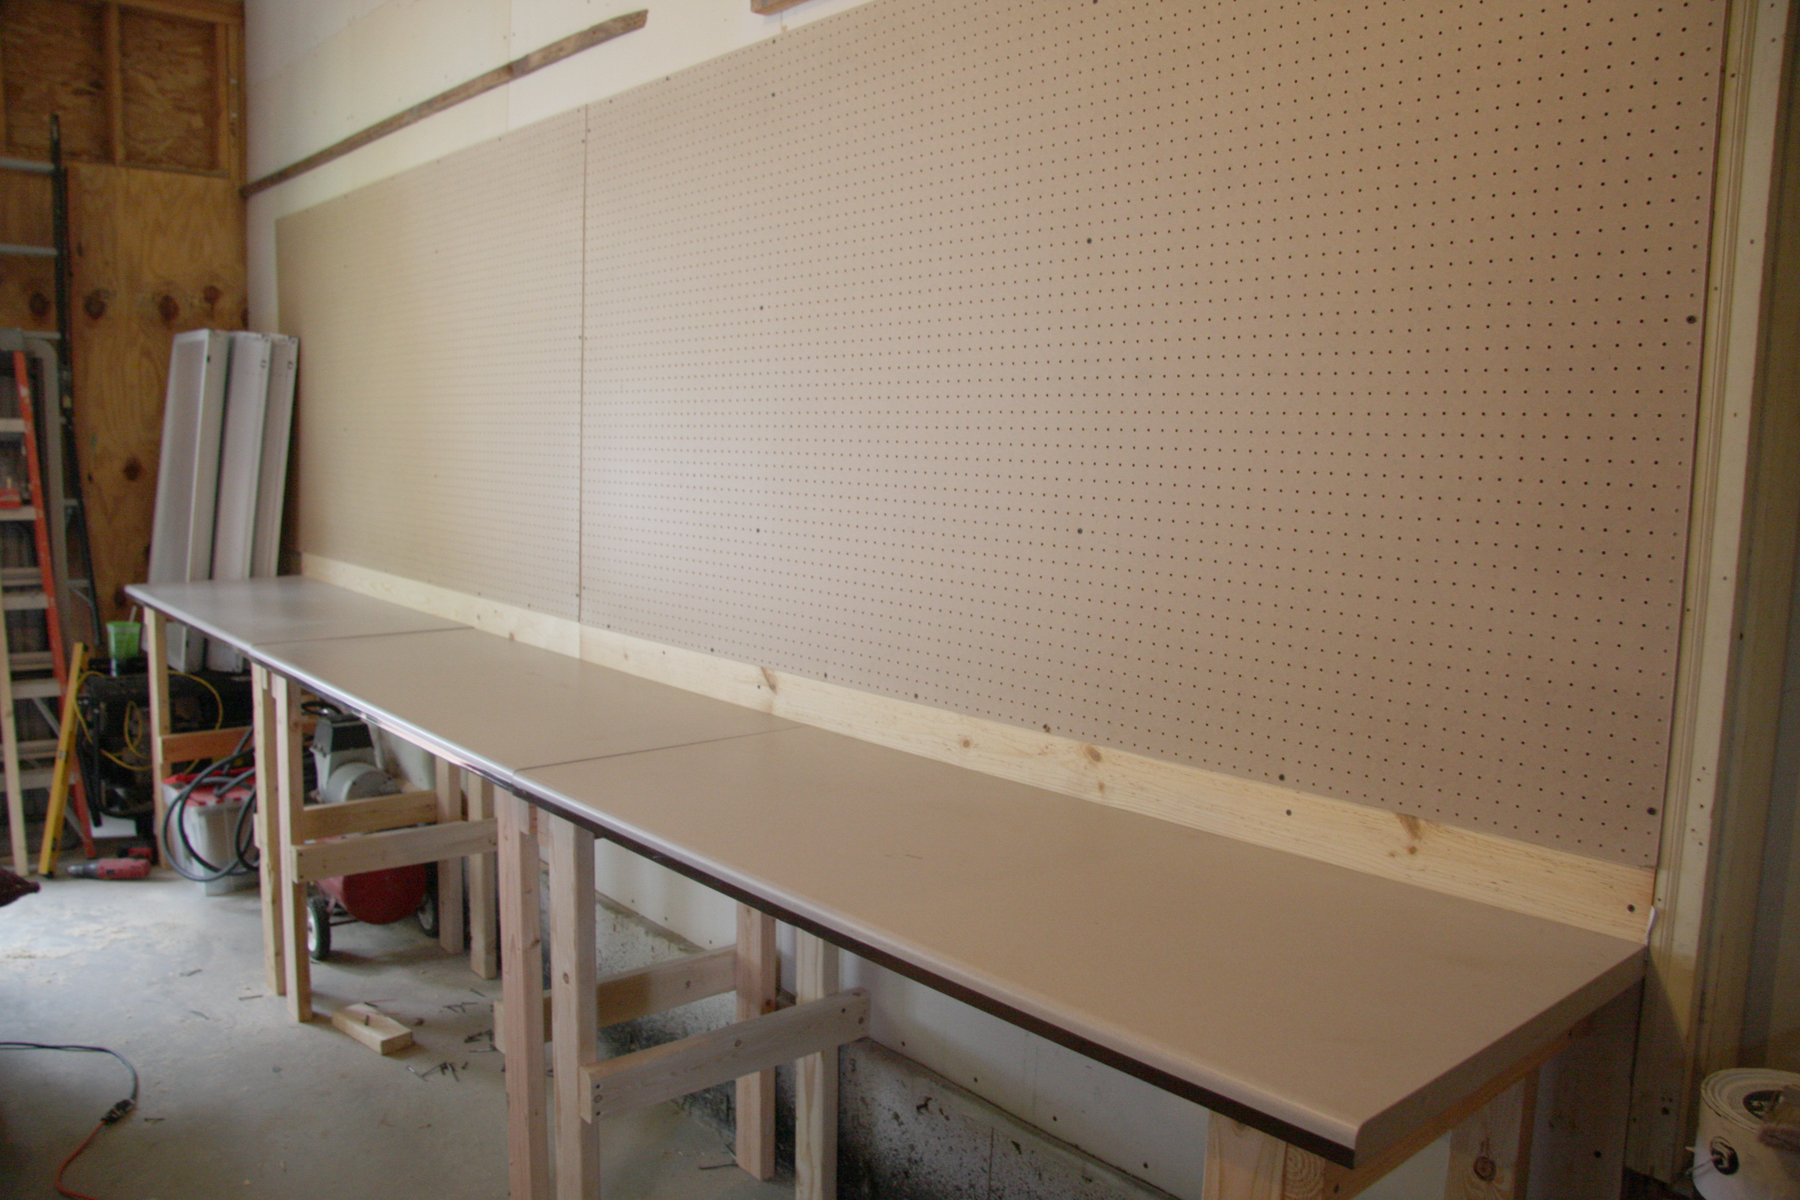 DIY workbench how-to {Love My DIY Home}